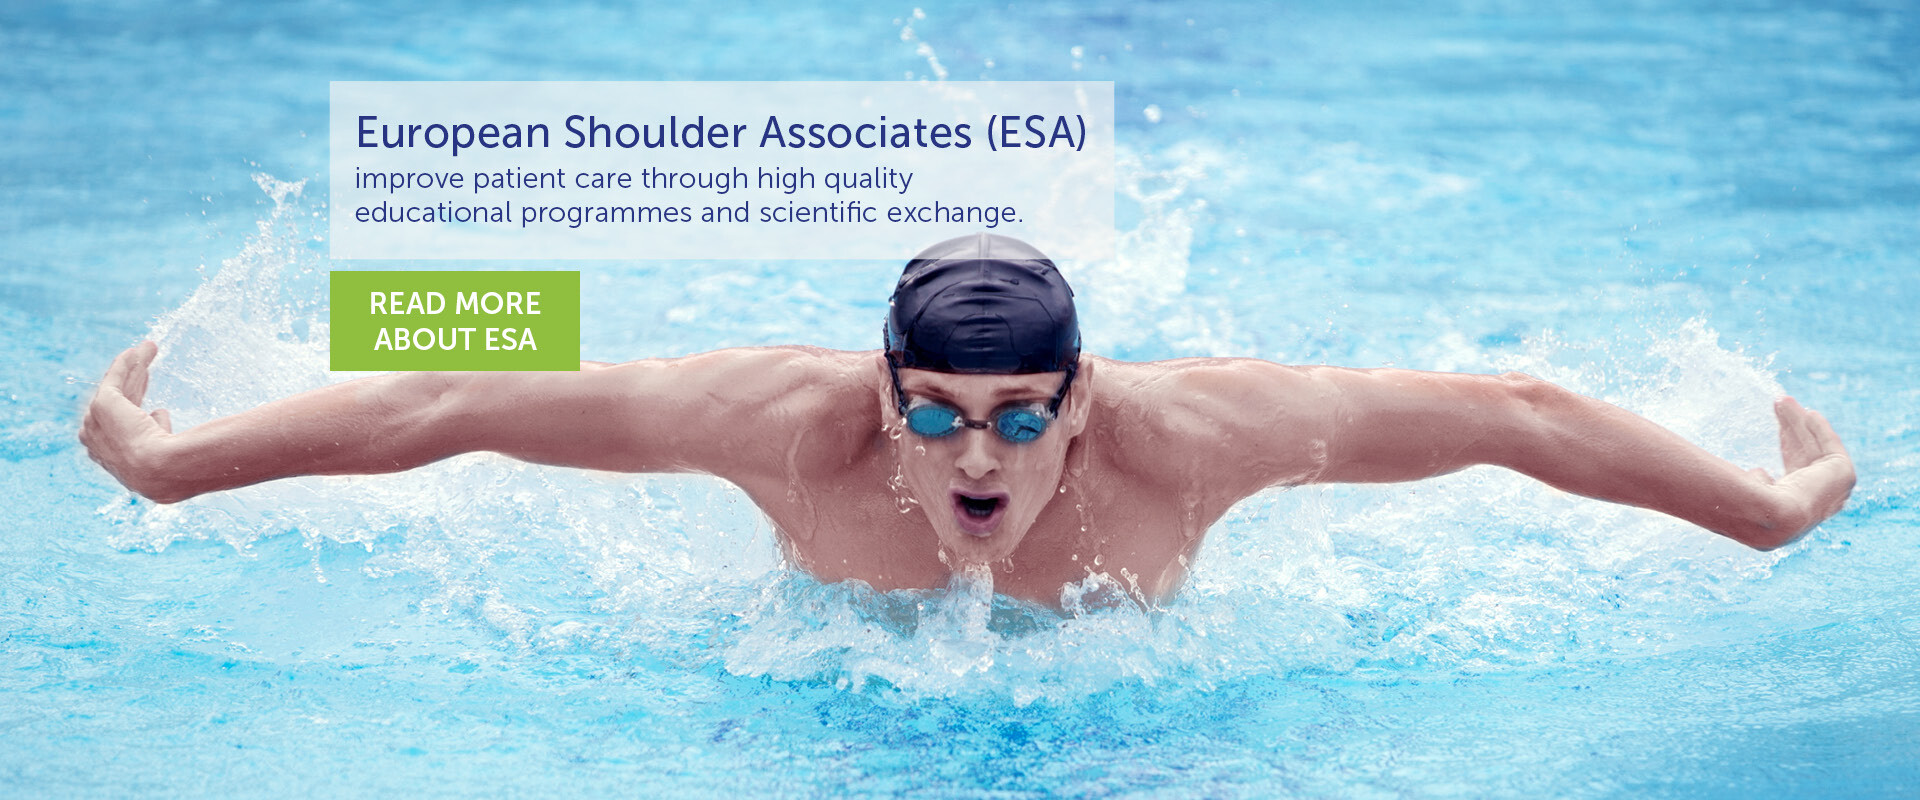 european shoulder association